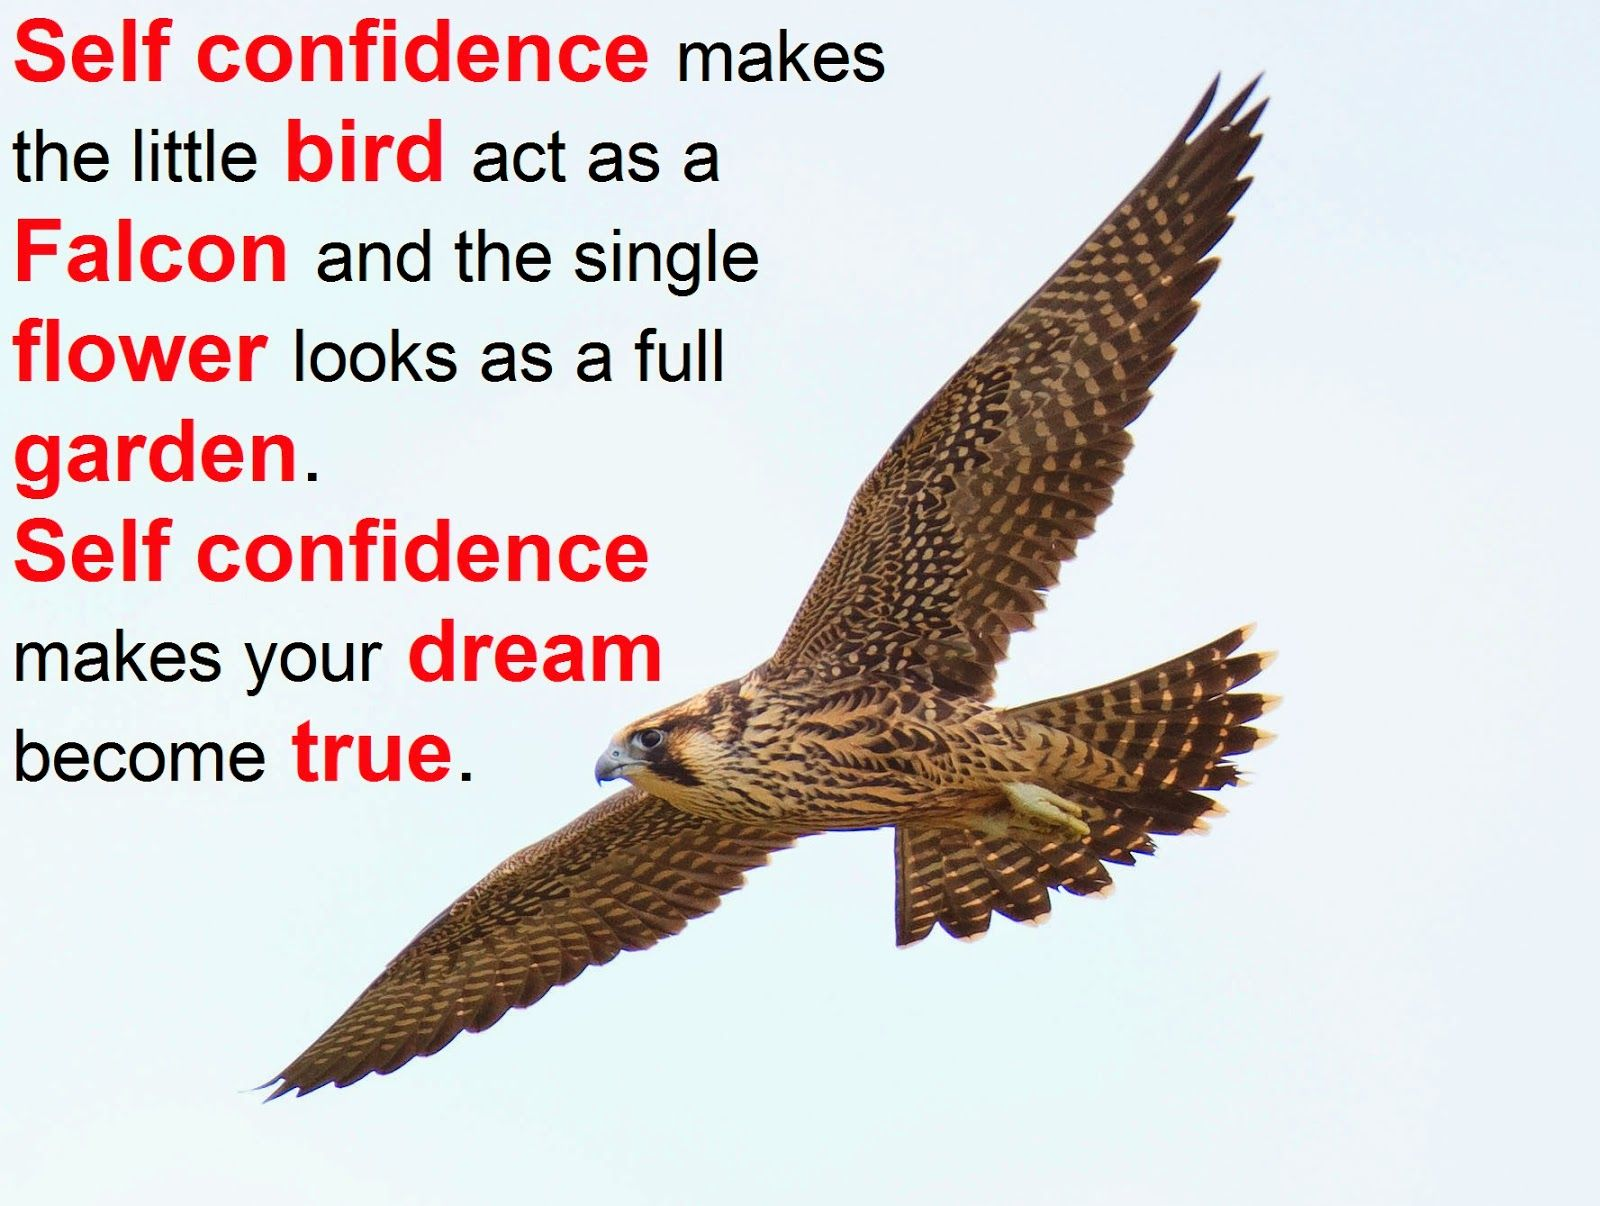 Self Confidence Quotes And Sayings Quotesgram Self Confidence Quotes Finding Love Quotes Confidence Quotes